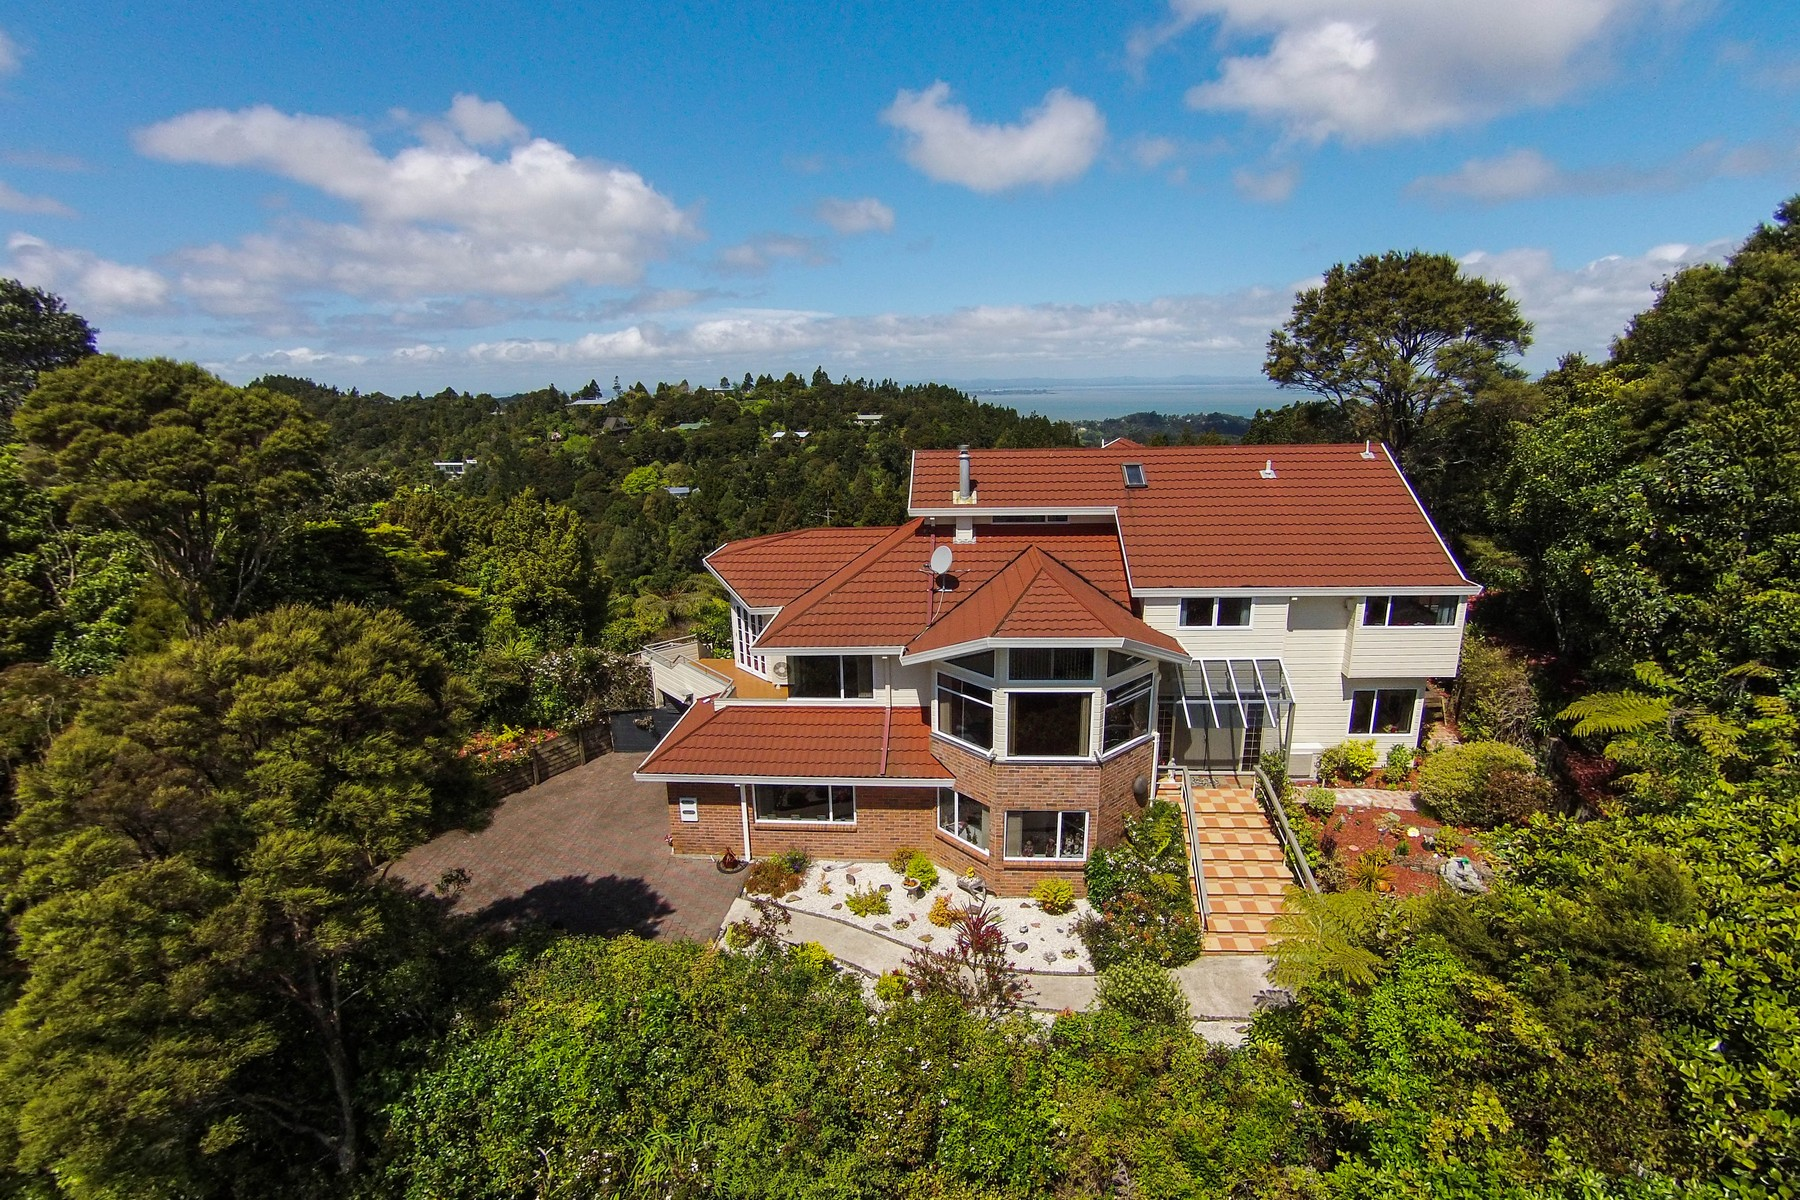 Single Family Home for Sale at 193 Carter Road 193 Carter Road Titirangi Other Auckland, Auckland 0604 New Zealand